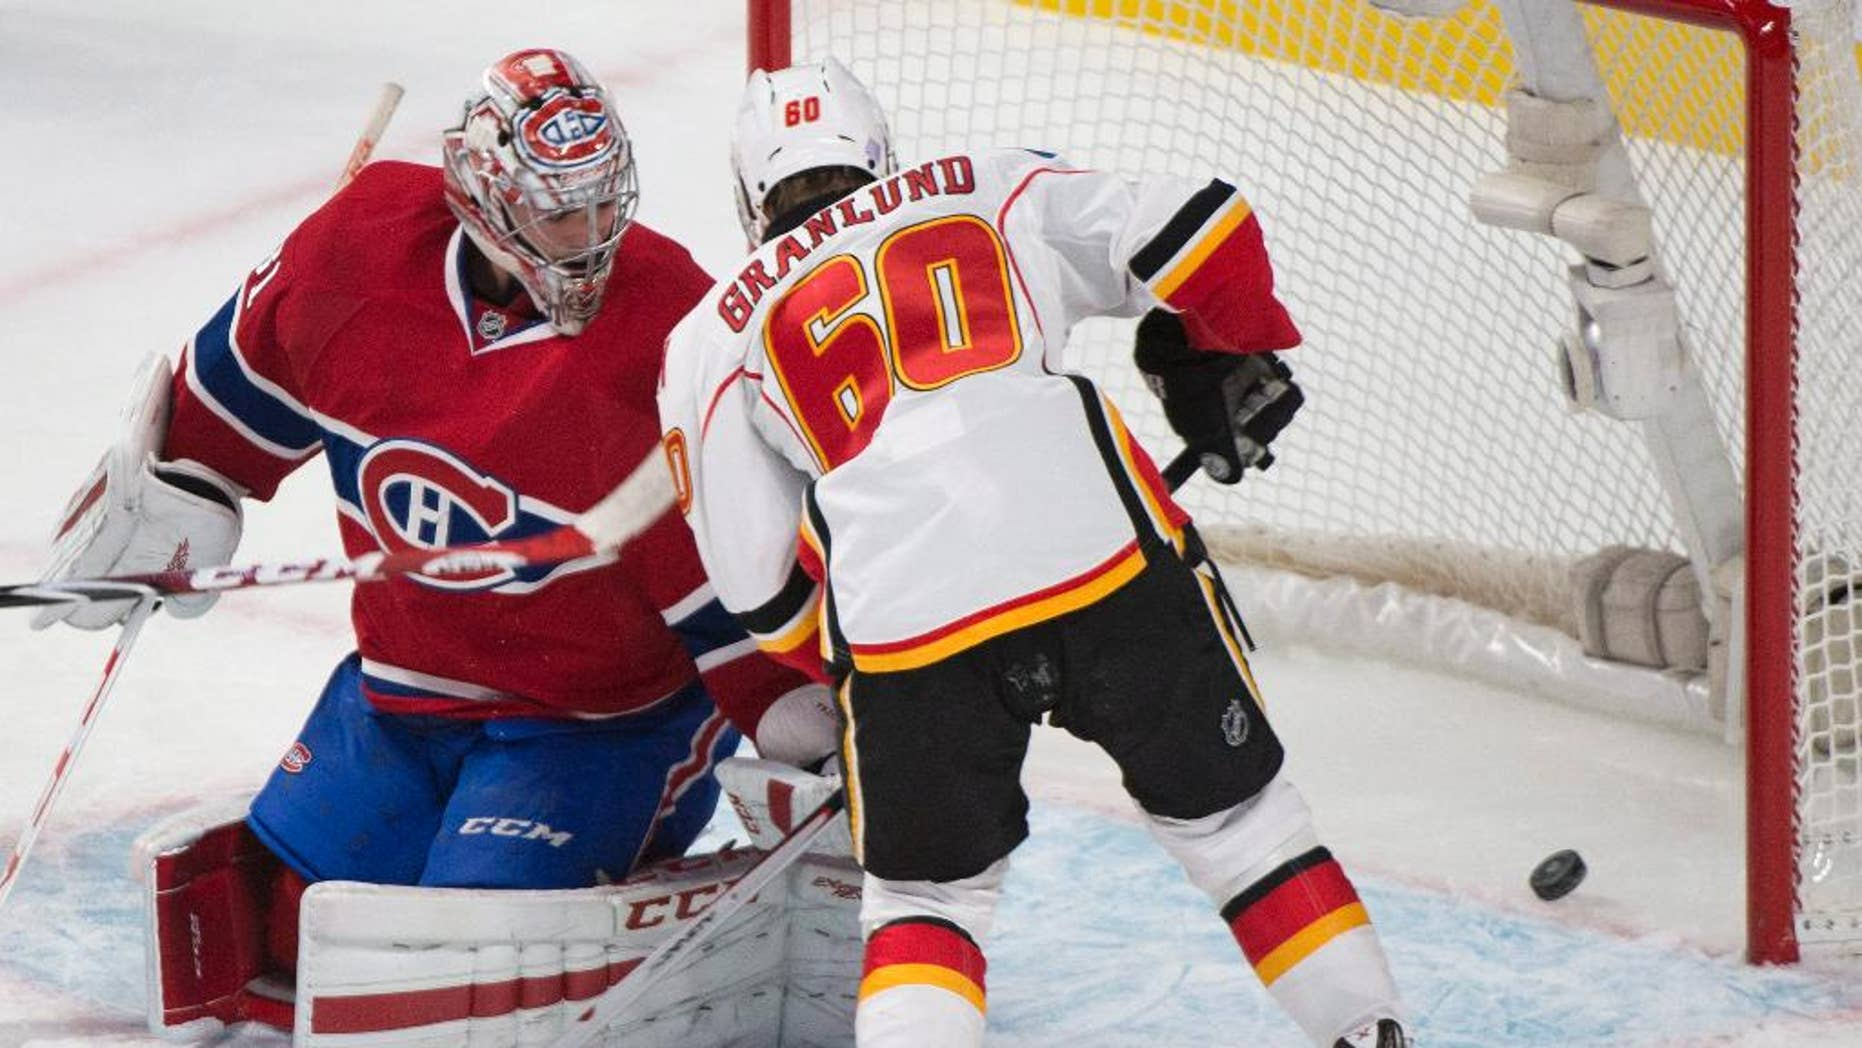 Montreal Canadiens goaltender Carey Price is scored on by Calgary Flames' Markus Granlund during first period NHL hockey action in Montreal, Sunday, Nov. 2, 2014. (AP Photo/The Canadian Press, Graham Hughes)